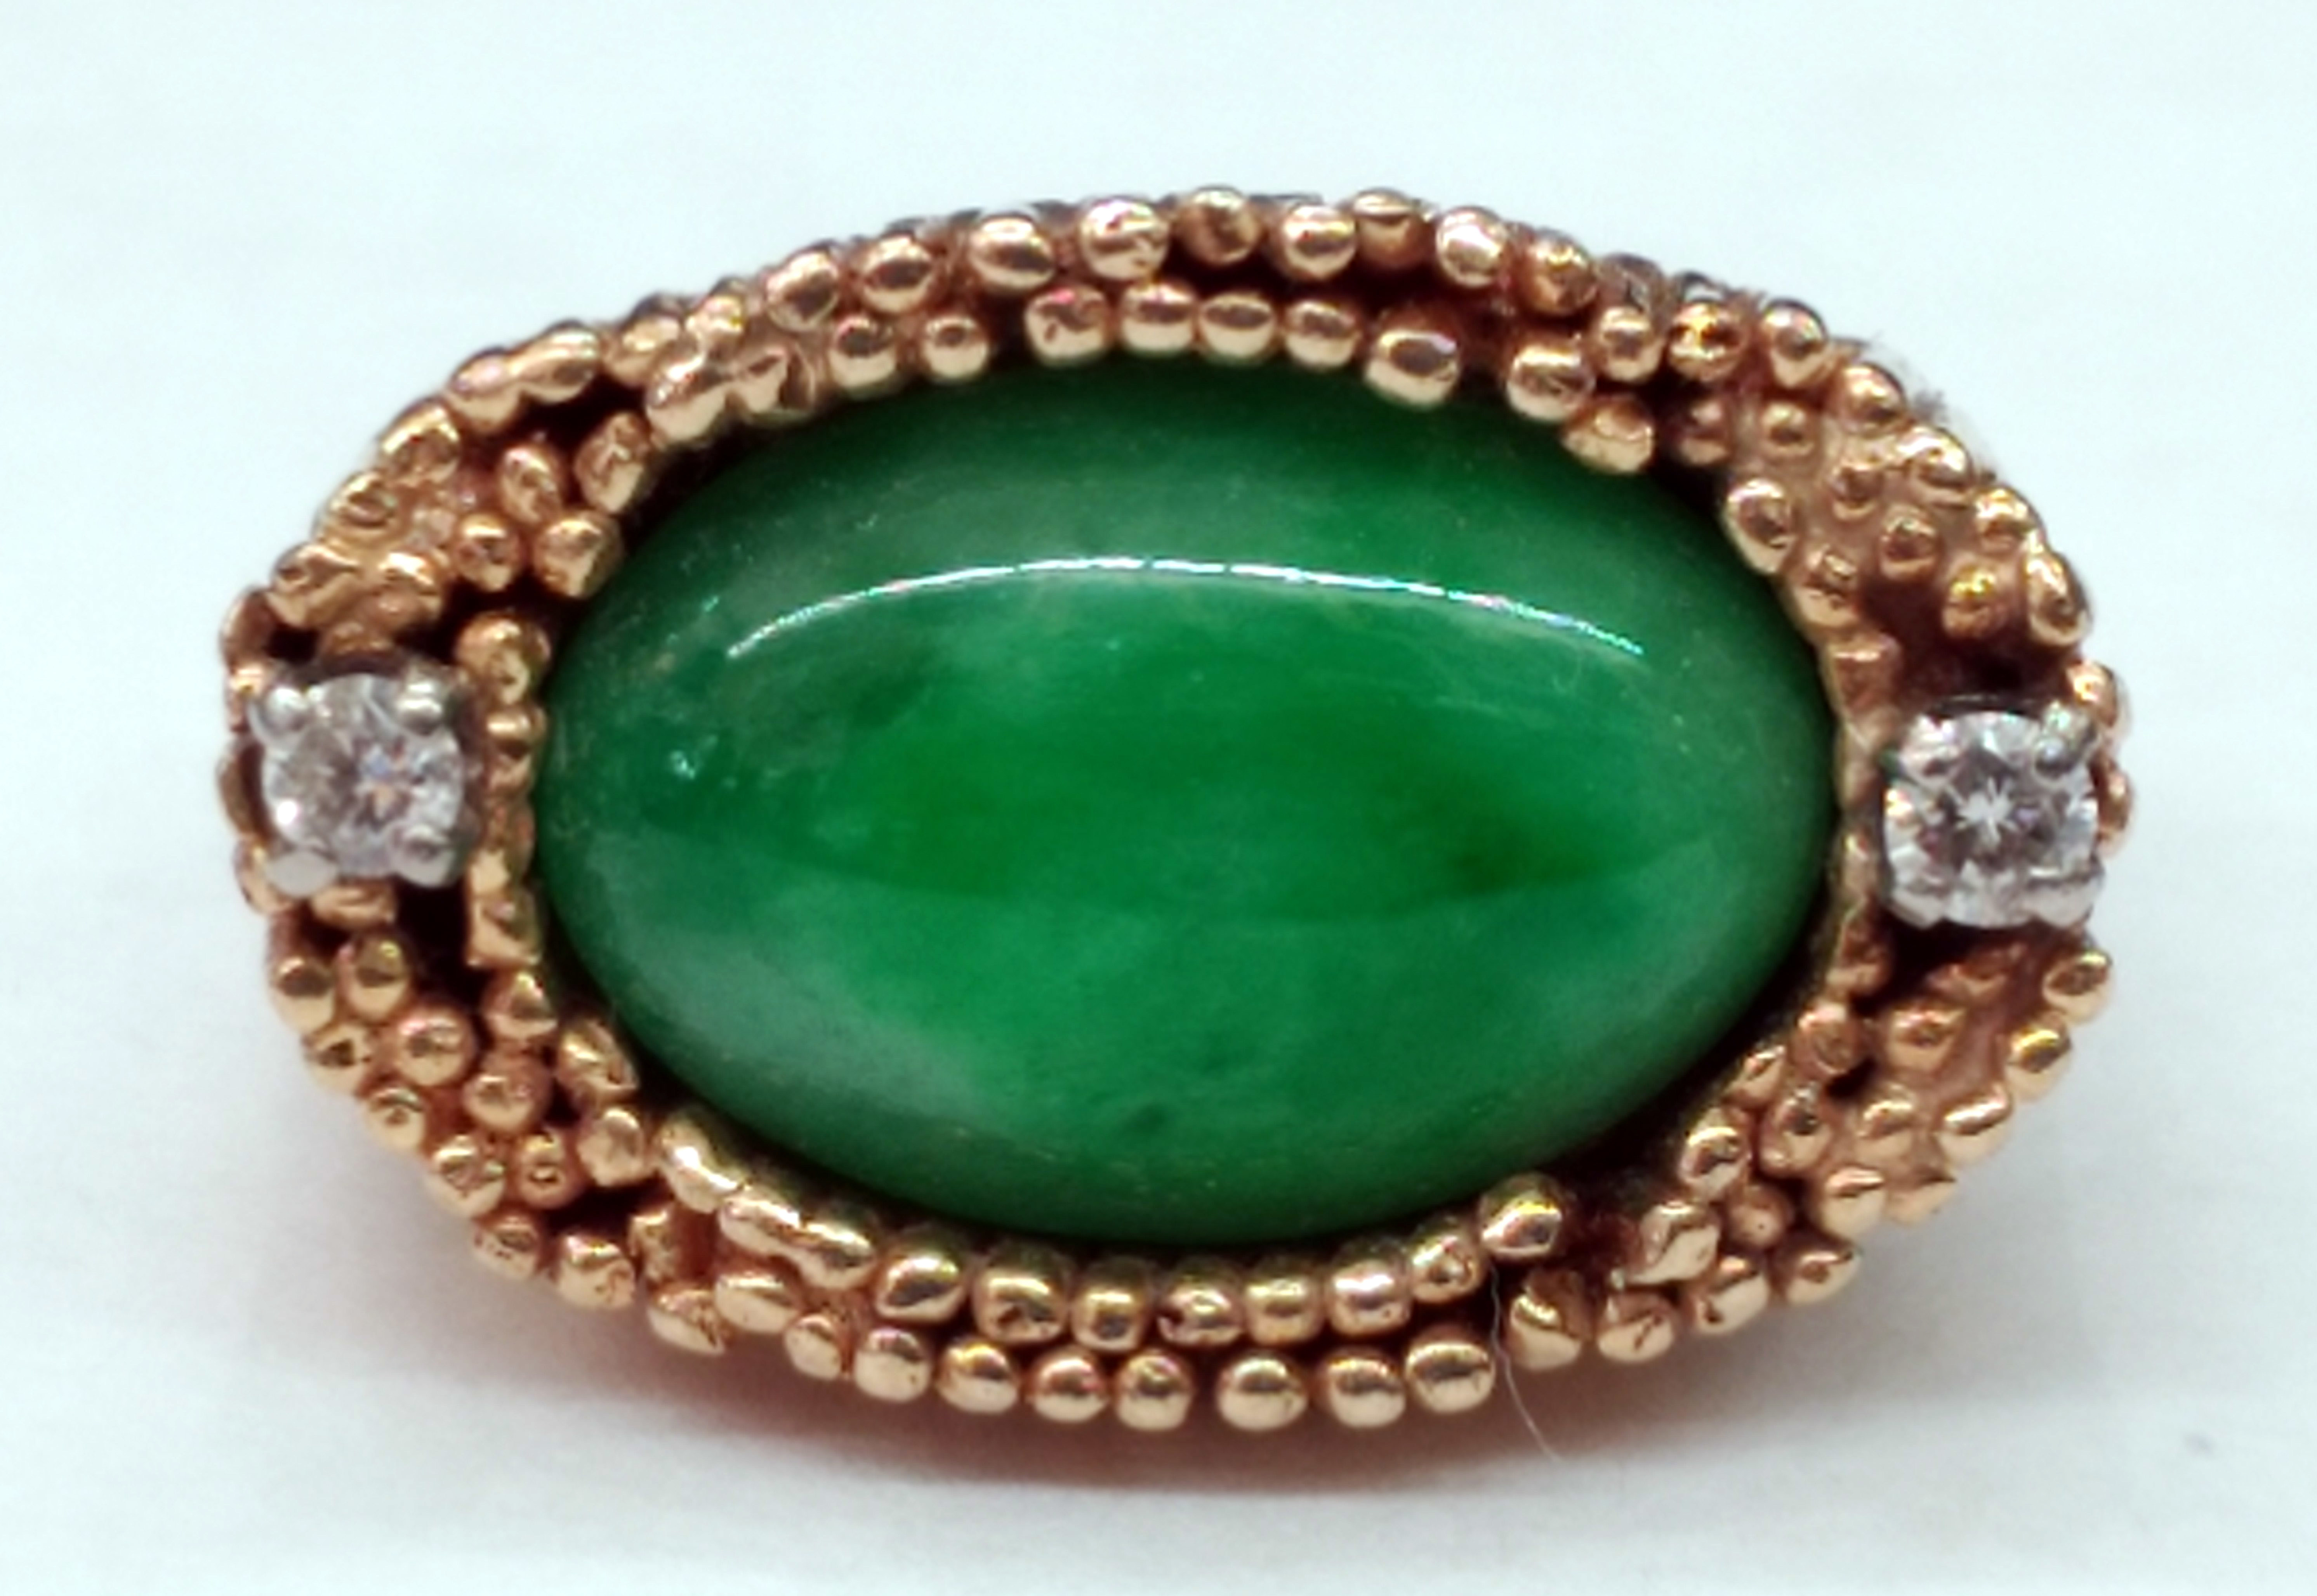 Green Jadeite Oval Cabochon and Round Diamond 14kt Yellow Gold Ring - Size 5